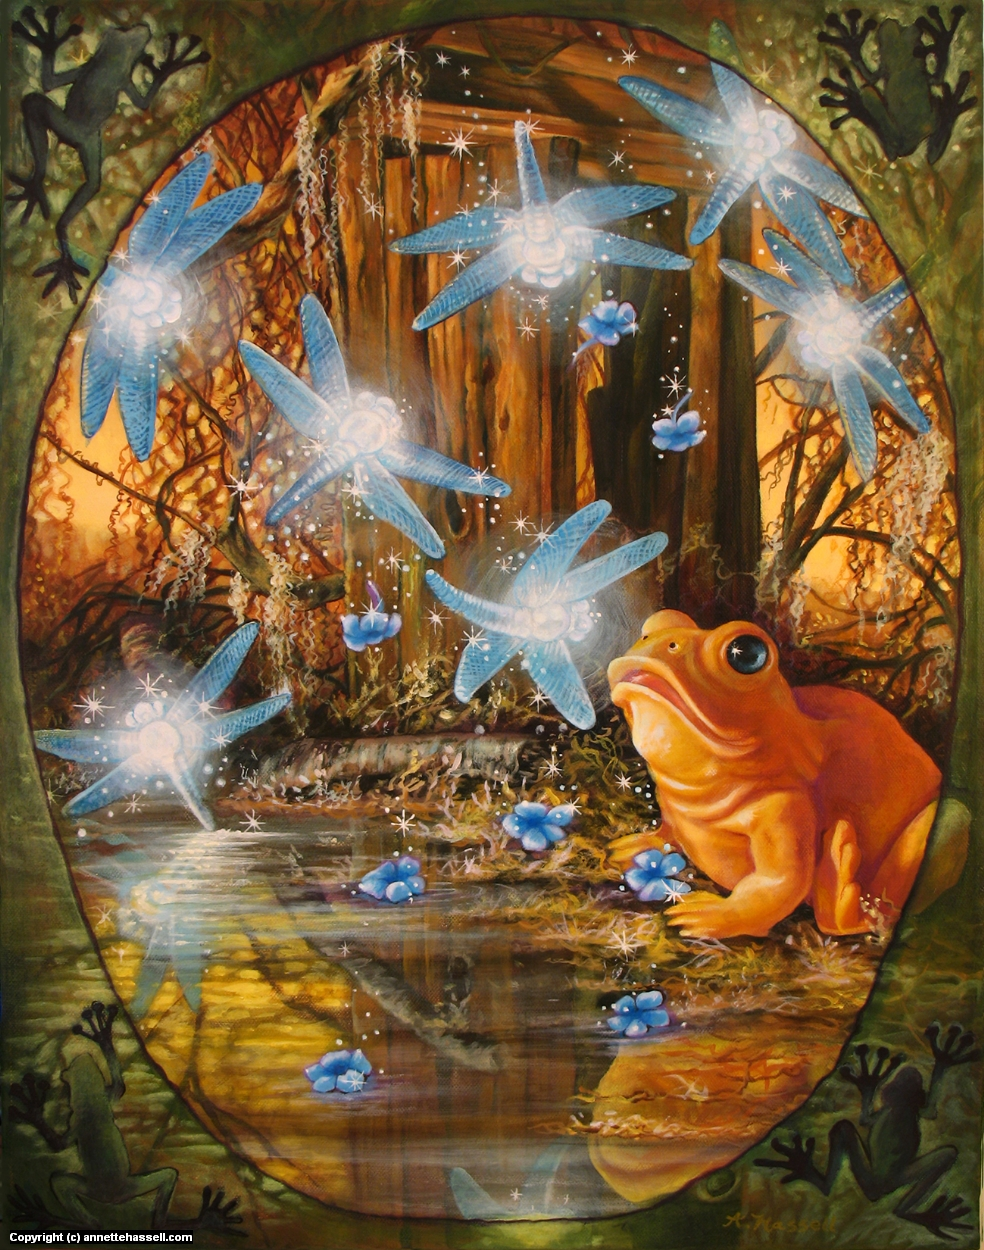 A Frog Enchanted Artwork by Annette Hassell